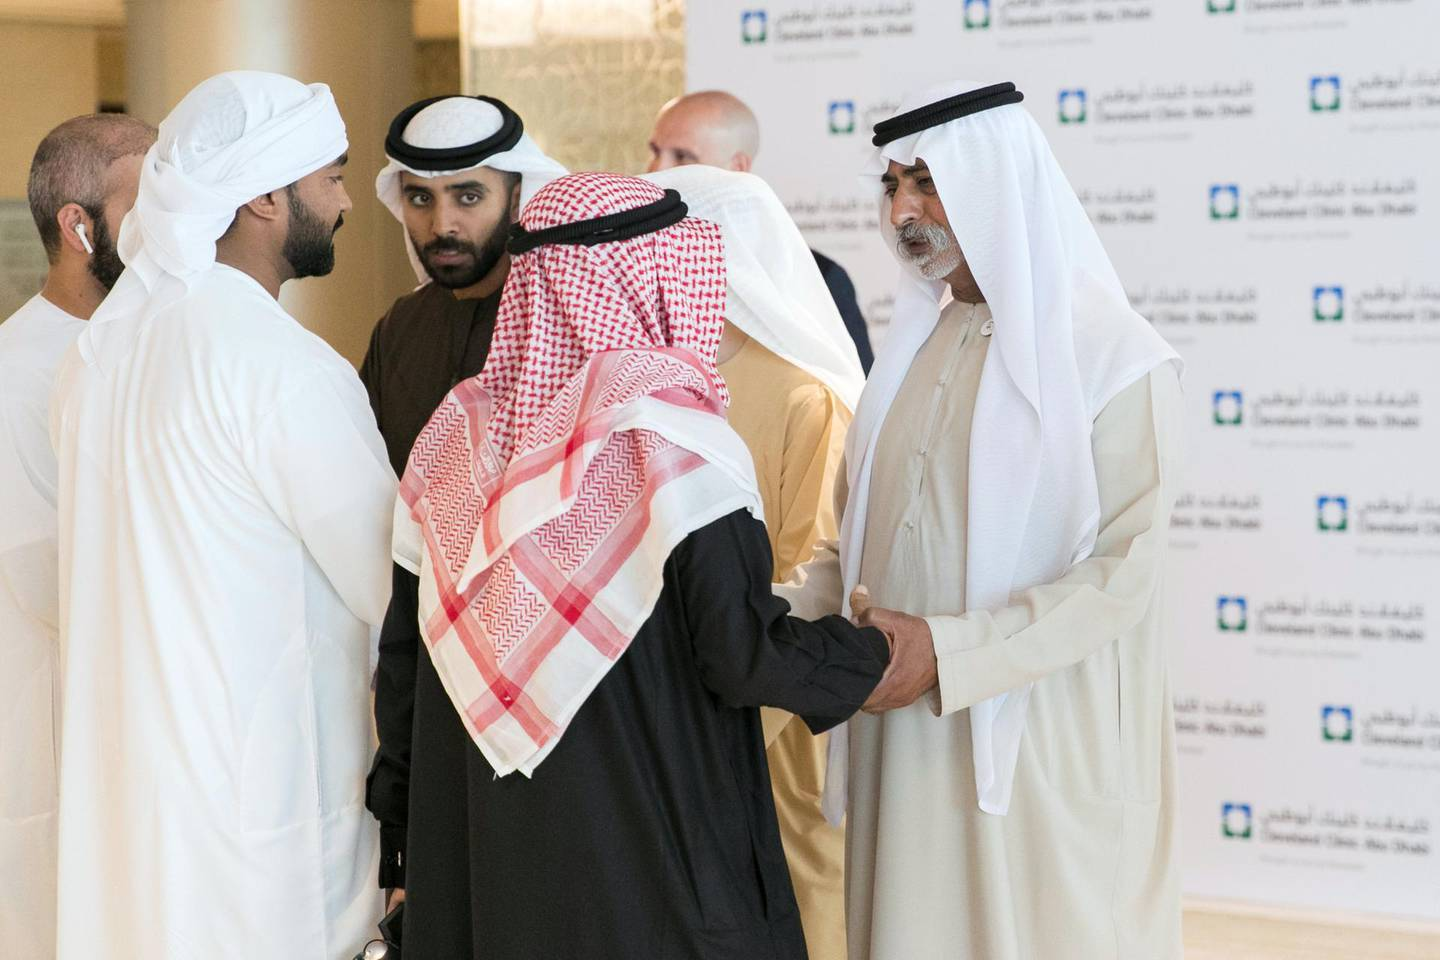 ABU DHABI, UNITED ARAB EMIRATES - JANUARY 22, 2019.Sheikh Nahyan bin Mubarak Al Nahyan, Minister of Tolerance, met today with UAE's transplant patients in Cleveland Hospital.(Photo by Reem Mohammed/The National)Reporter: SHIREENASection:  NA